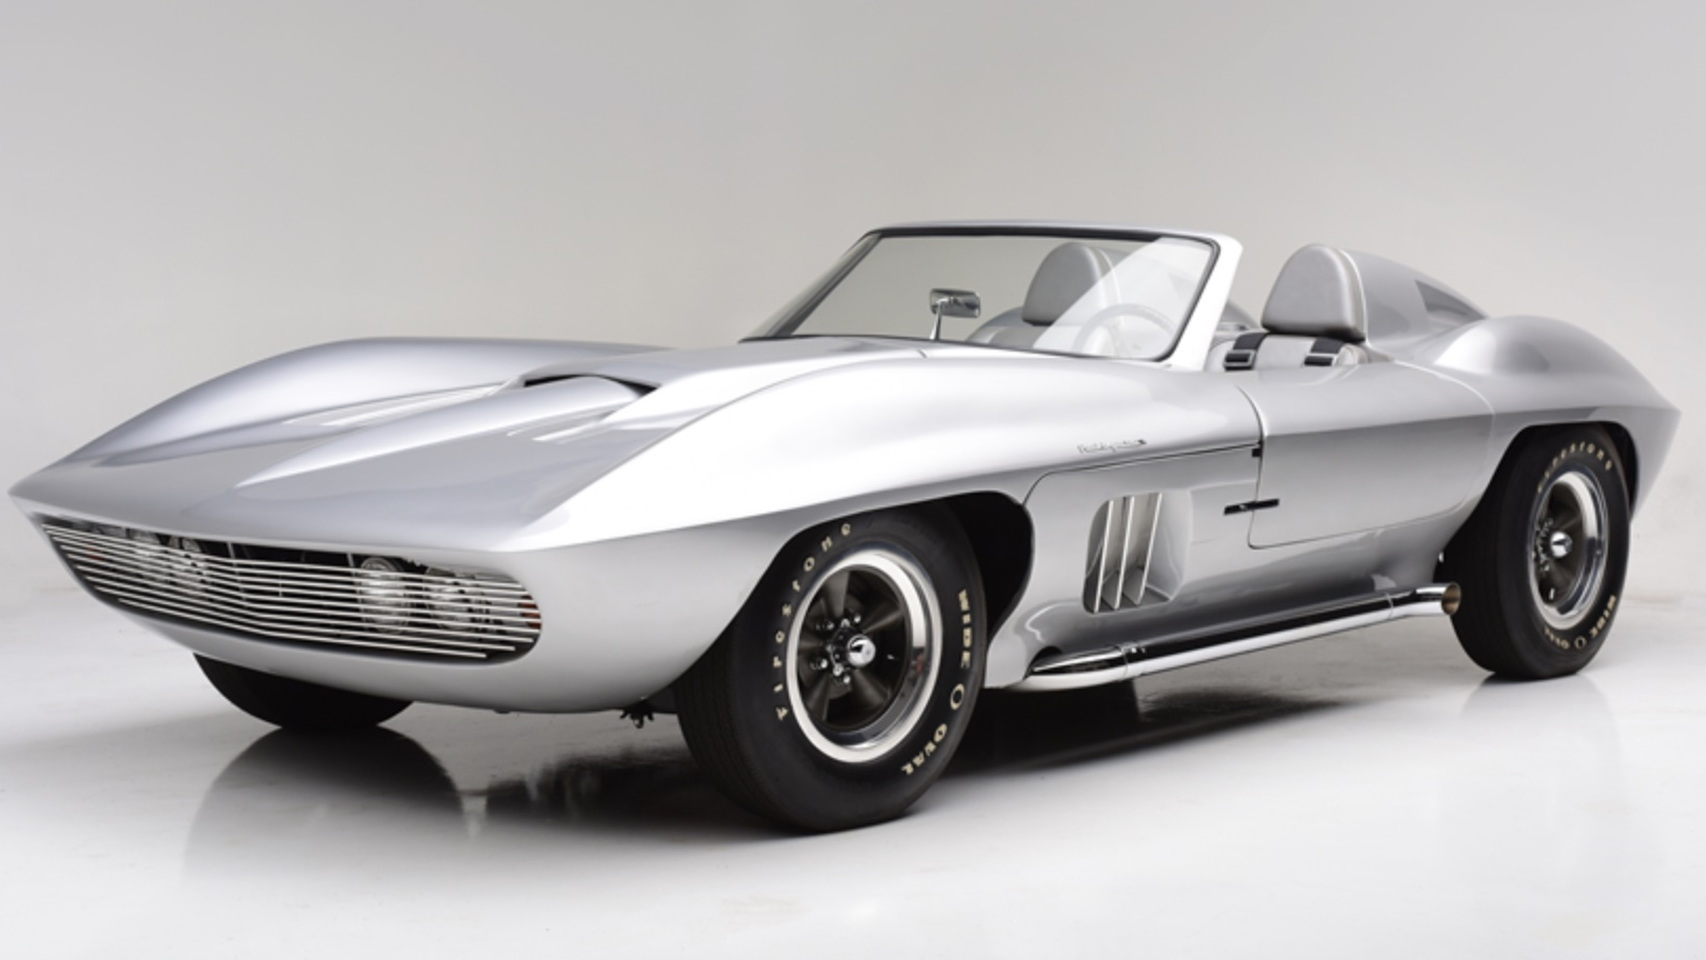 1958 Centurion C1 Corvette-based C2 race car